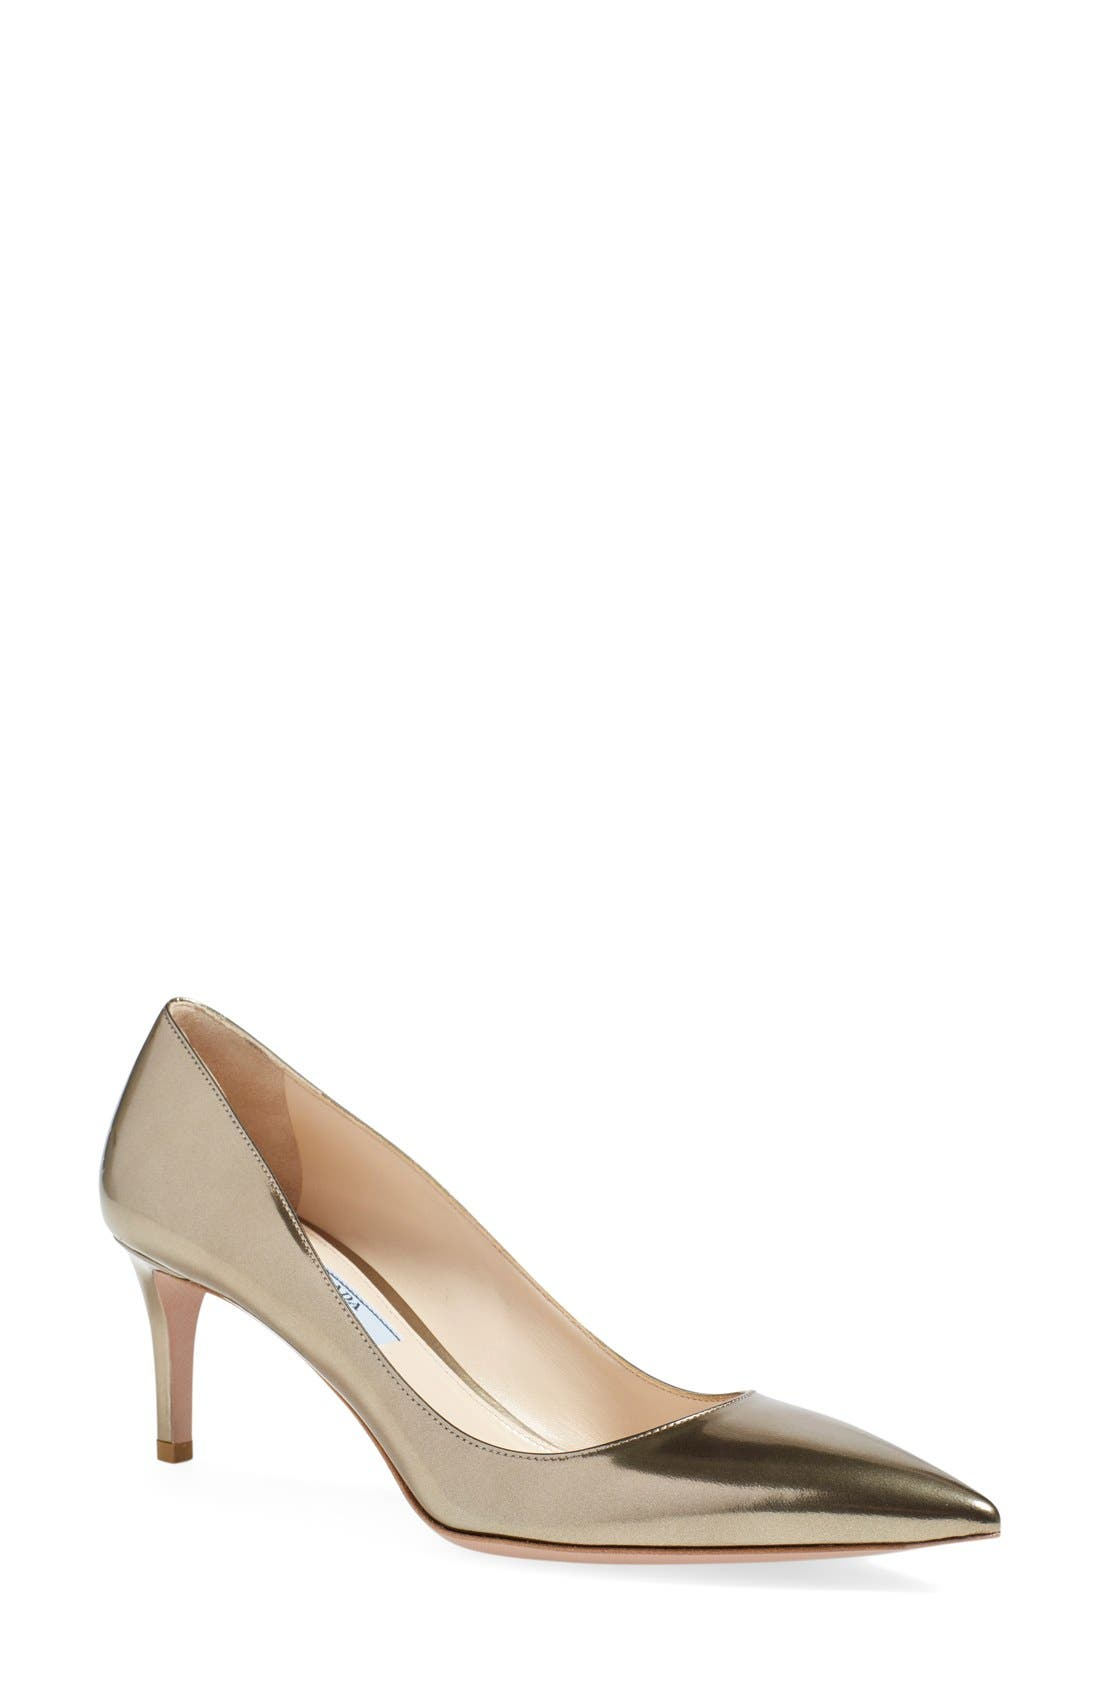 PRADA Metallic Pointy Toe Pump